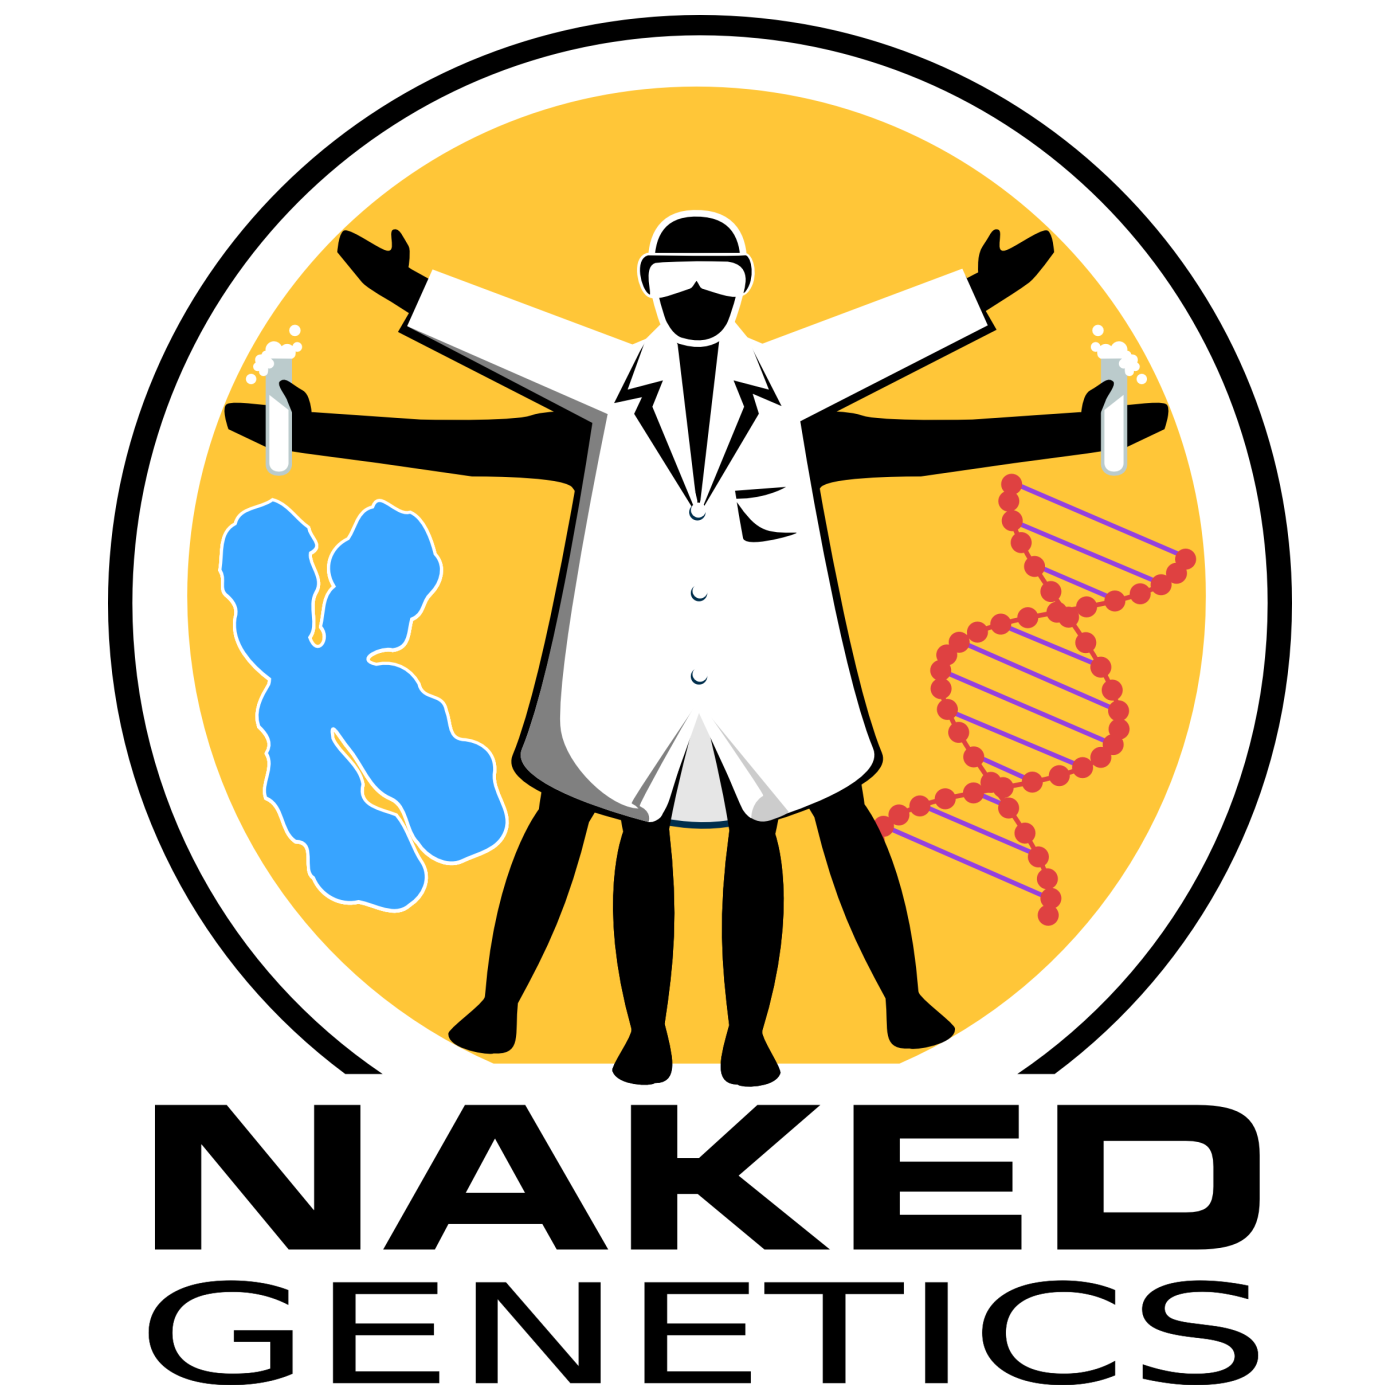 Naked Genetics, from the Naked Scientists